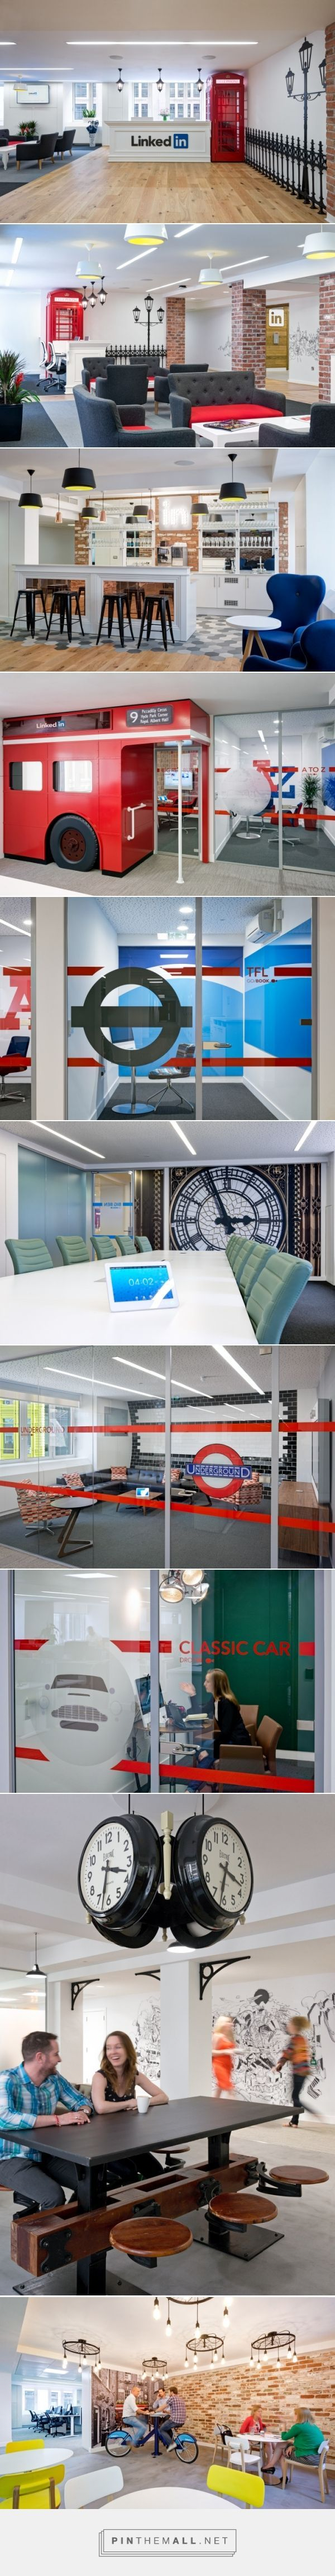 LinkedIn Office By Denton Associates London UK Retail Design Blog